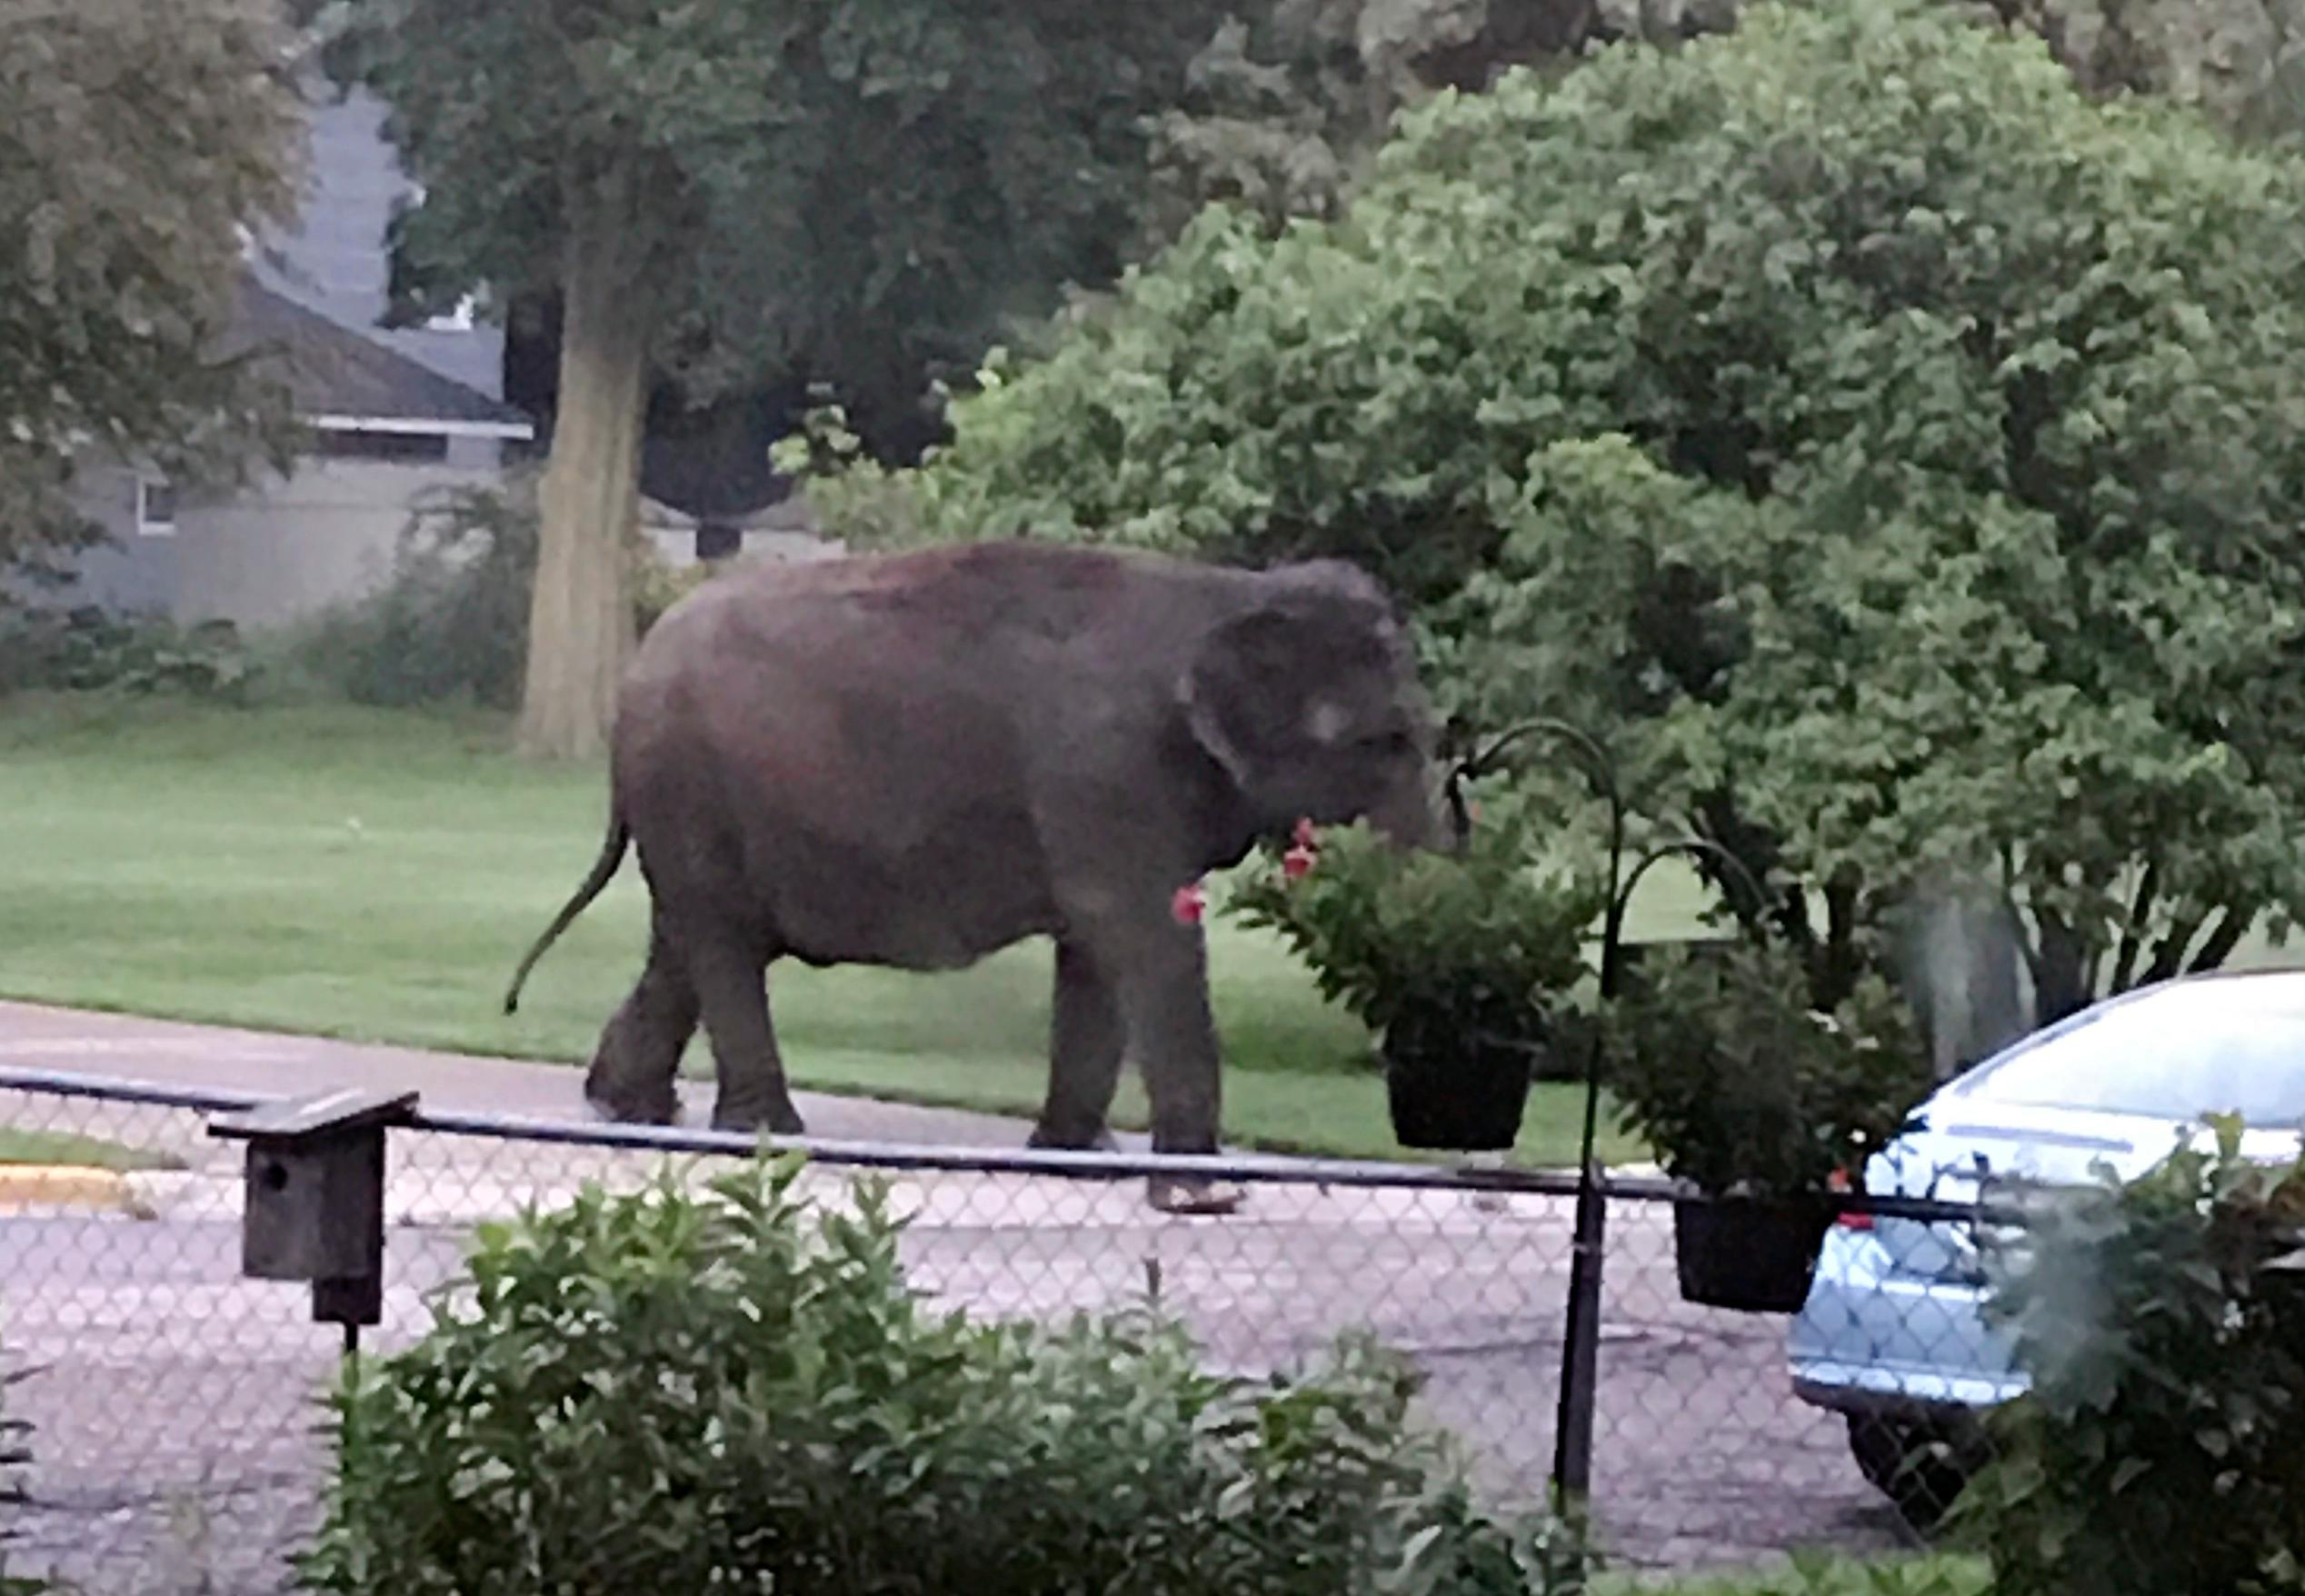 An elephant walks in the street, Friday, June 30, 2017, in Baraboo, Wis. Law enforcement officers quickly got in touch with the nearby Circus World Museum, home to the wandering pachyderm. A trainer arrived and led the elephant back to the circus complex. (Jaime Peterson via AP)